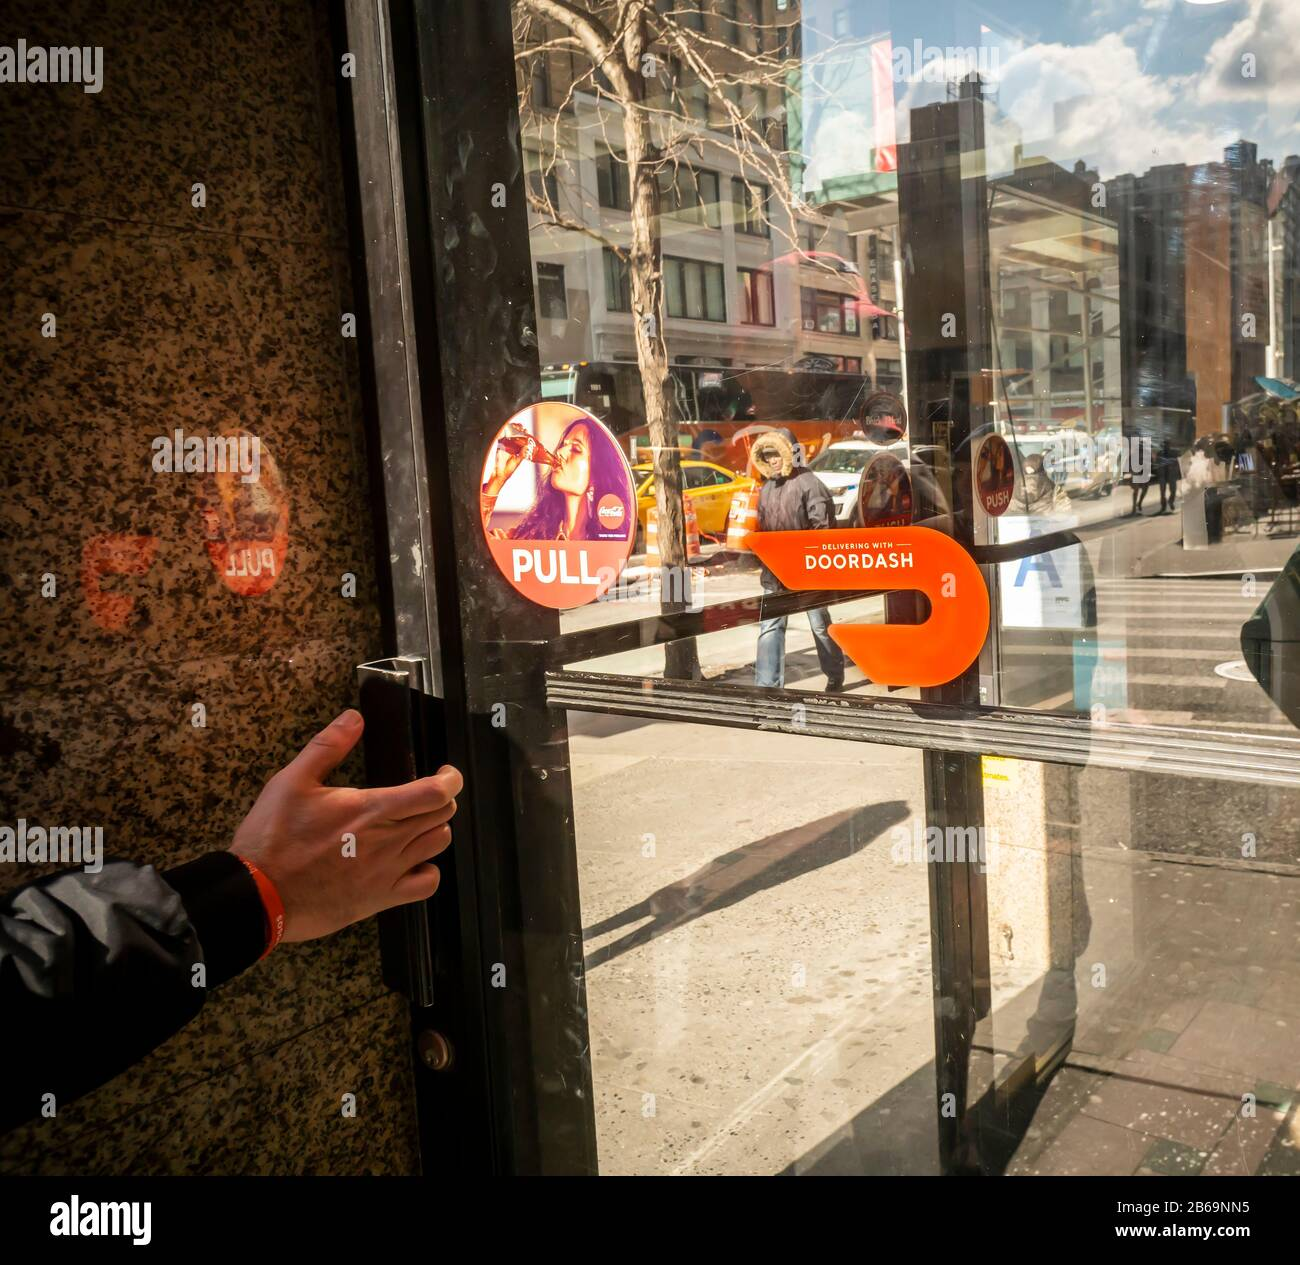 A sticker on the door of a delicatessen in New York informs shoppers of their use of Doordash as a delivery service, seen on Friday, February 28, 2020. (© Richard B. Levine) Stock Photo